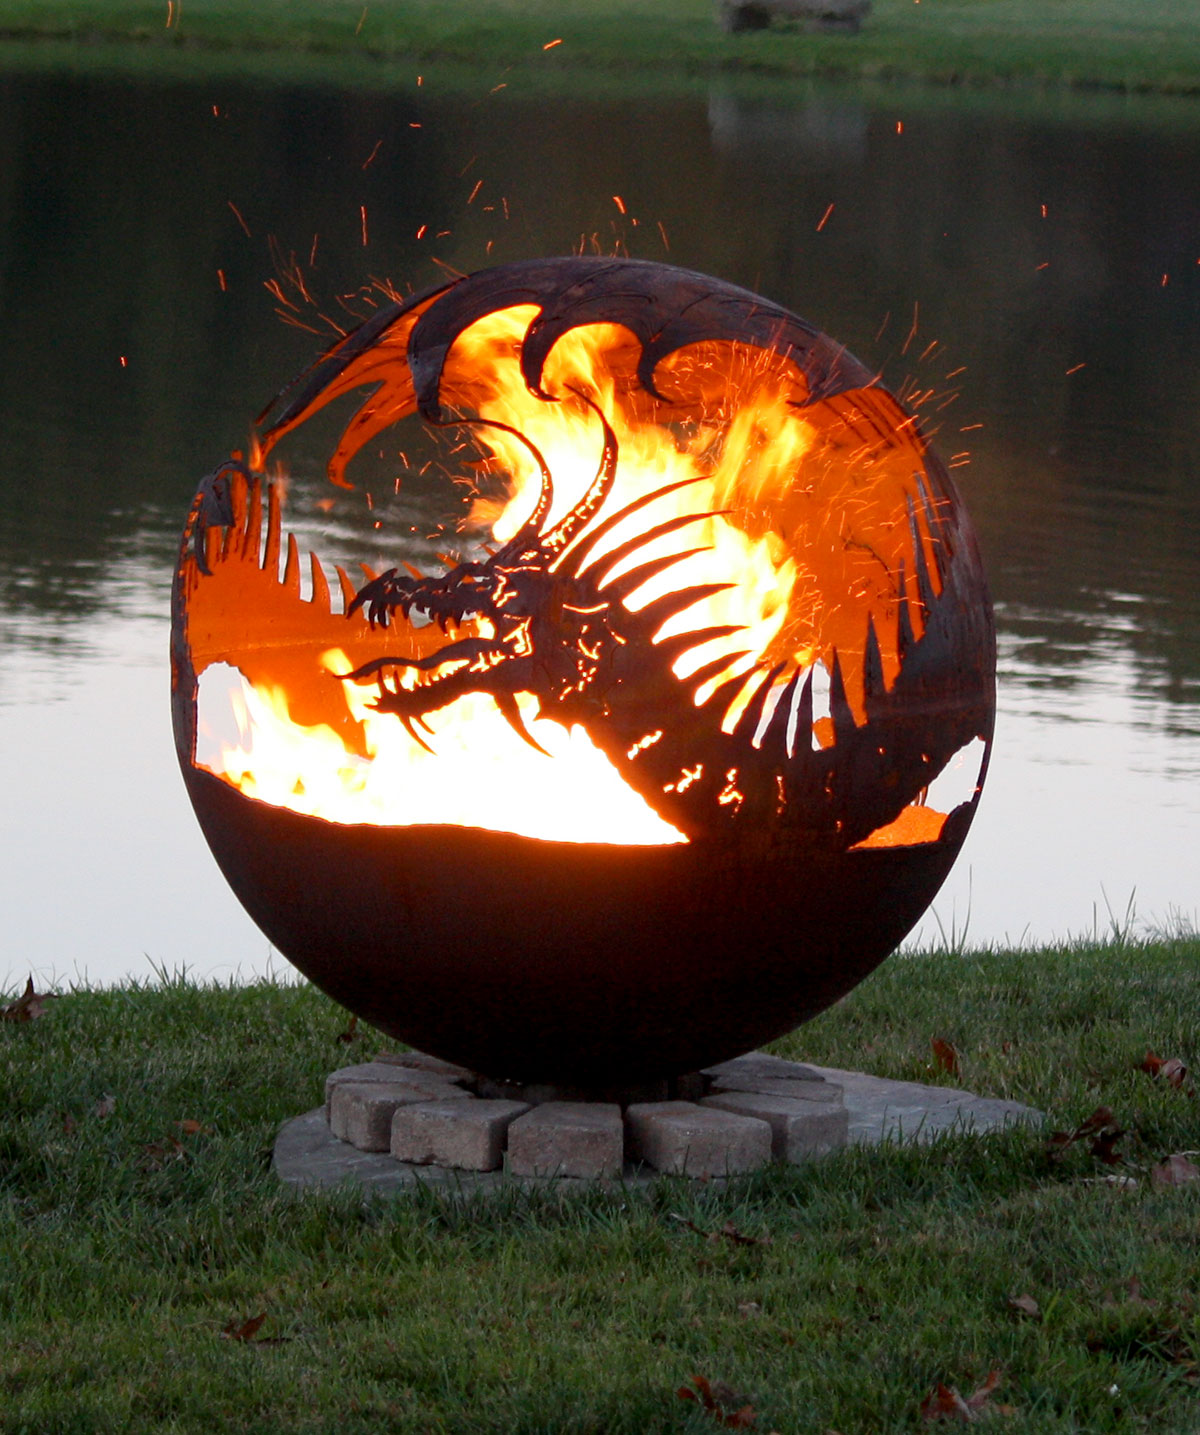 Pendragons Hearth Dragon Fire Pit Sphere The